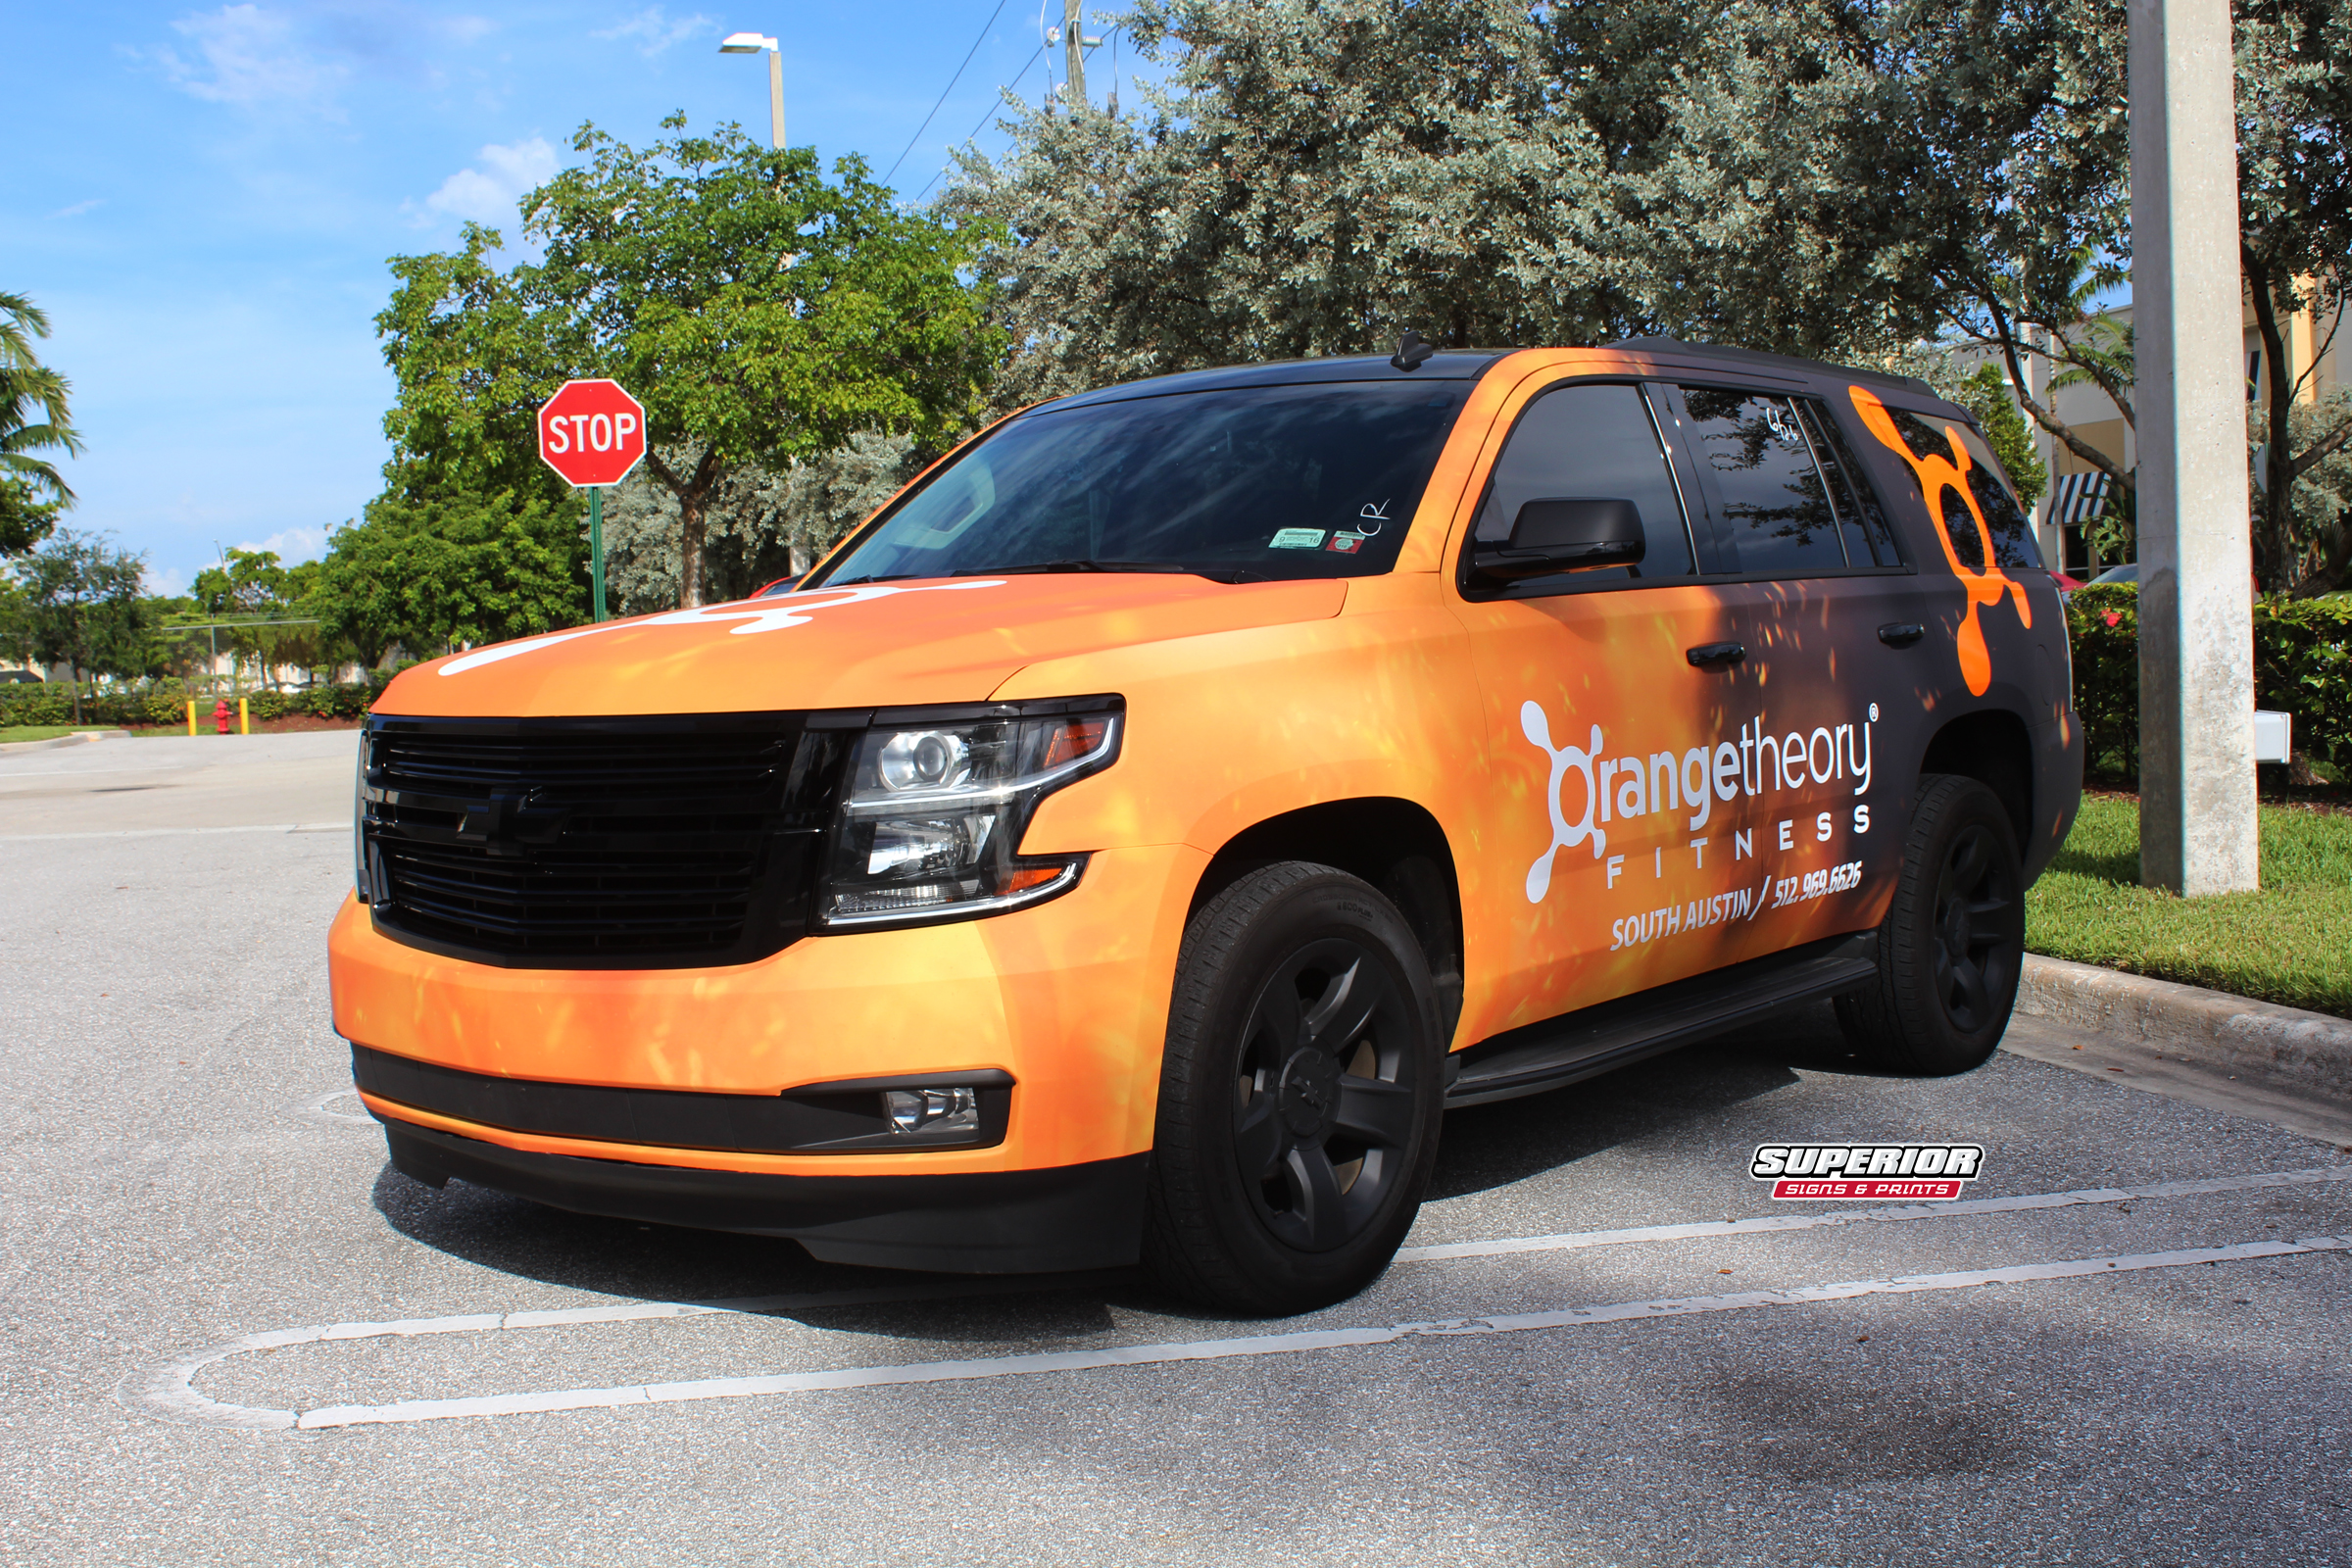 2014 Chevy Tahoe Commercial Car Wrap For Orangetheory